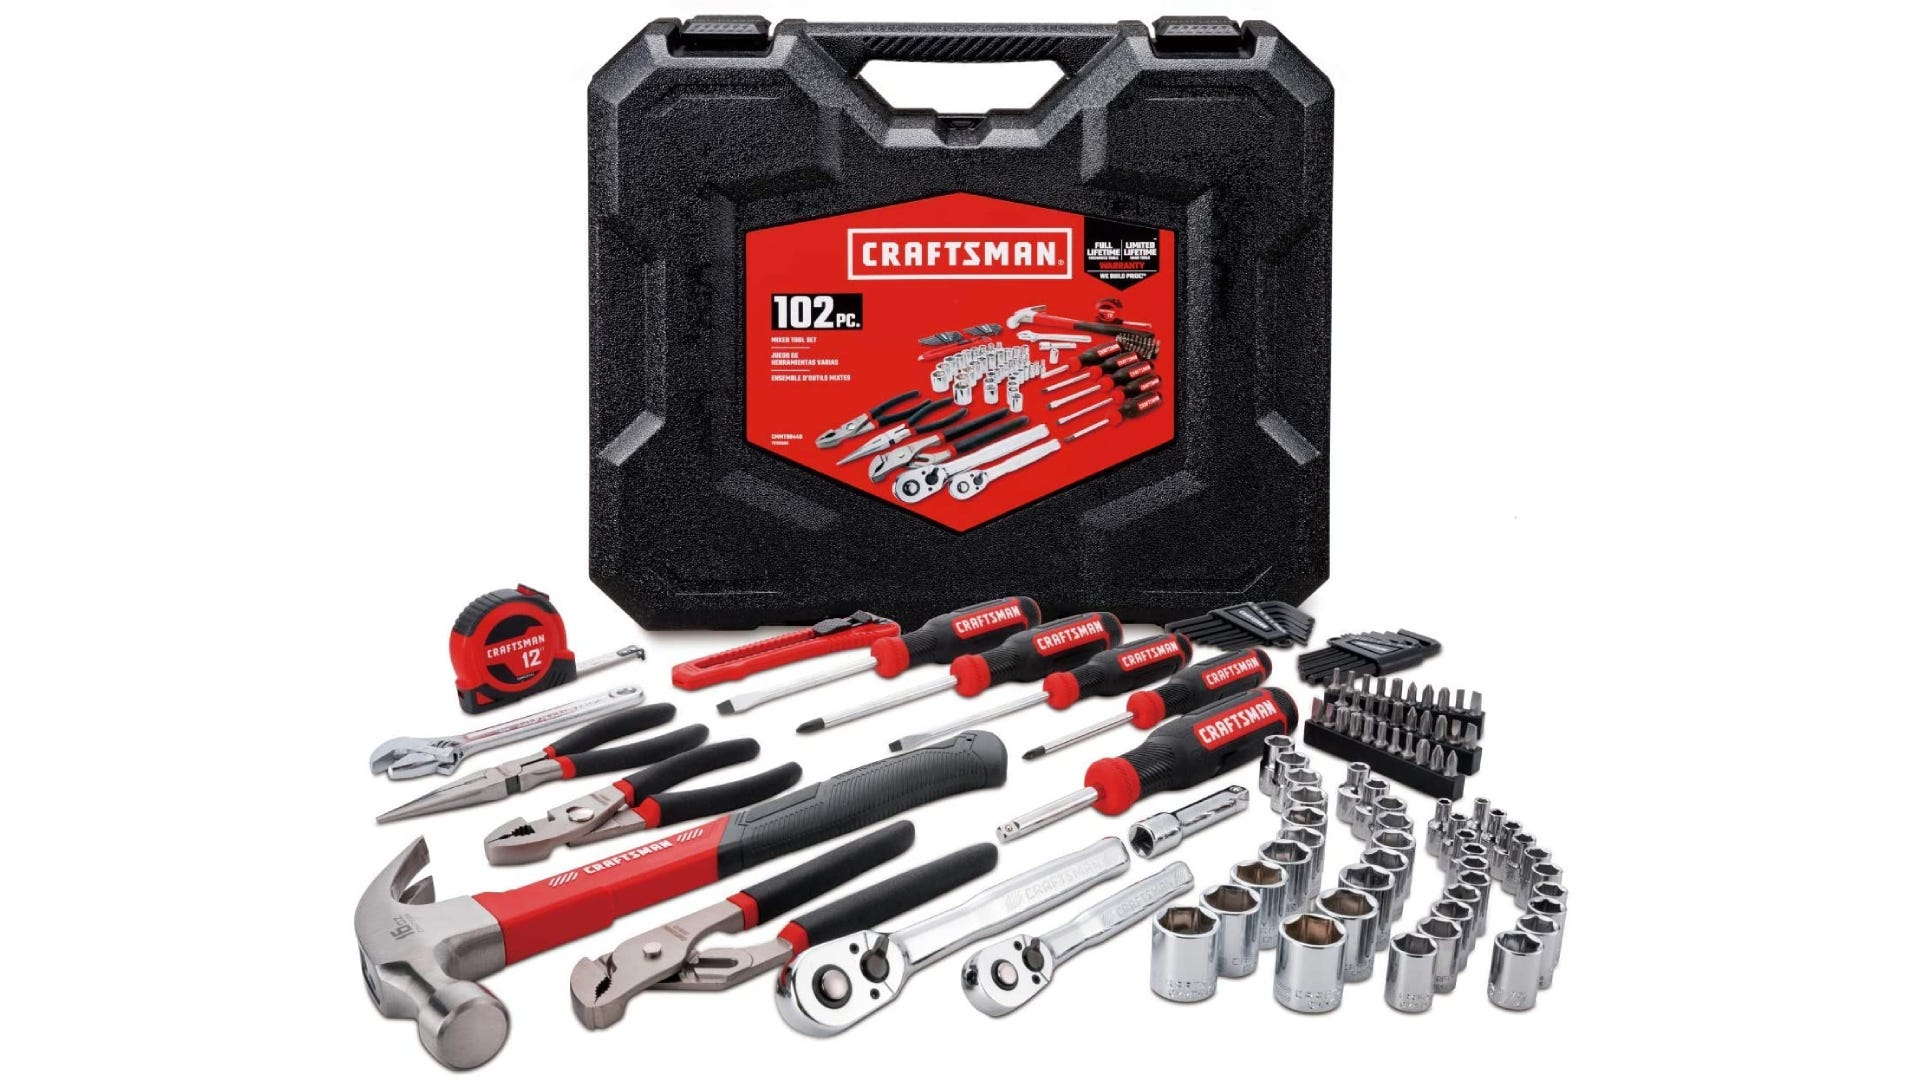 A Craftsman toolbox with a full set of tools sitting in front of it.